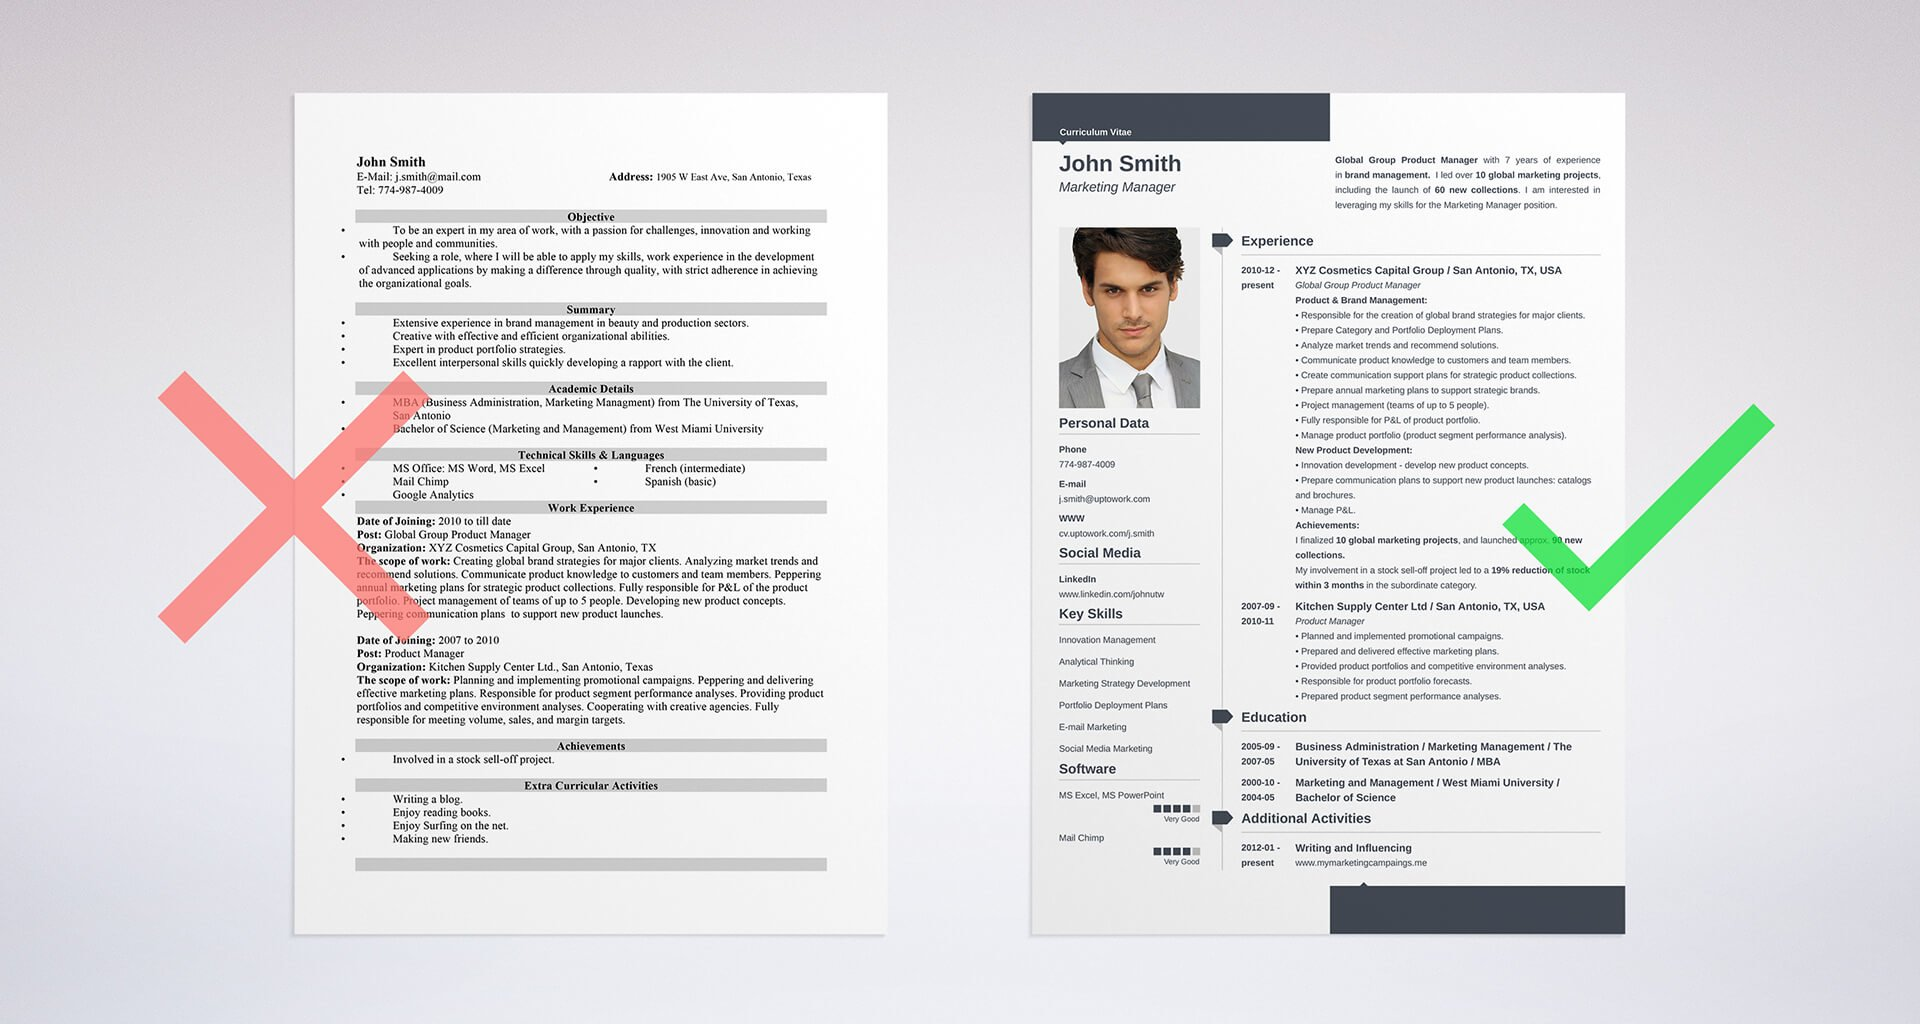 best examples of what skills to put on a resume proven tips 30 best examples of what skills to put on a resume proven tips